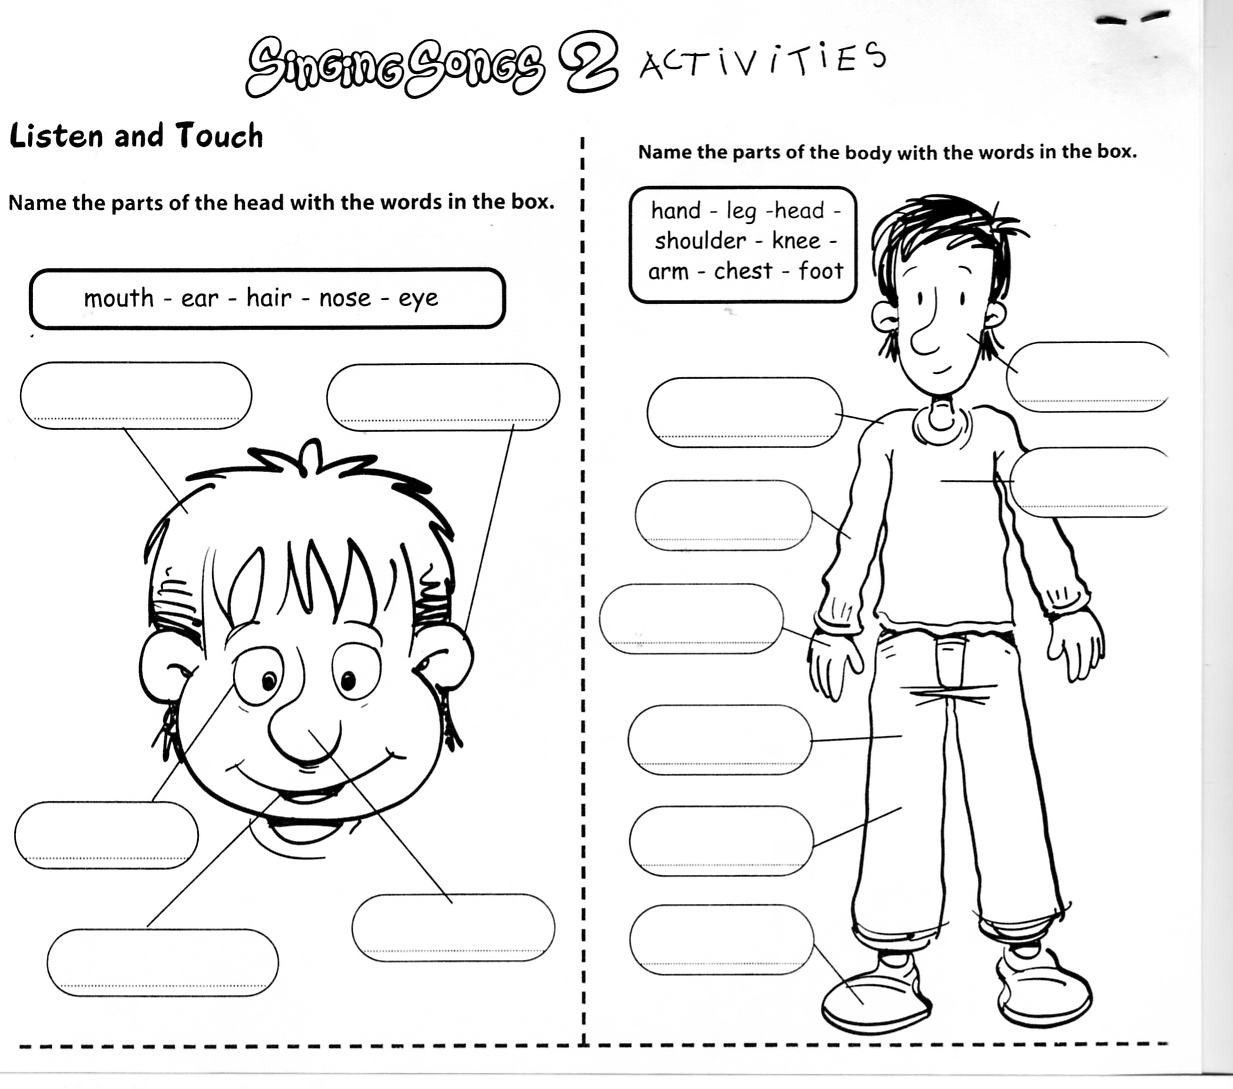 Worksheets Kindergarten Esl Worksheets worksheets for esl kindergarten and activities math worksheet body face kids event health kindergarten